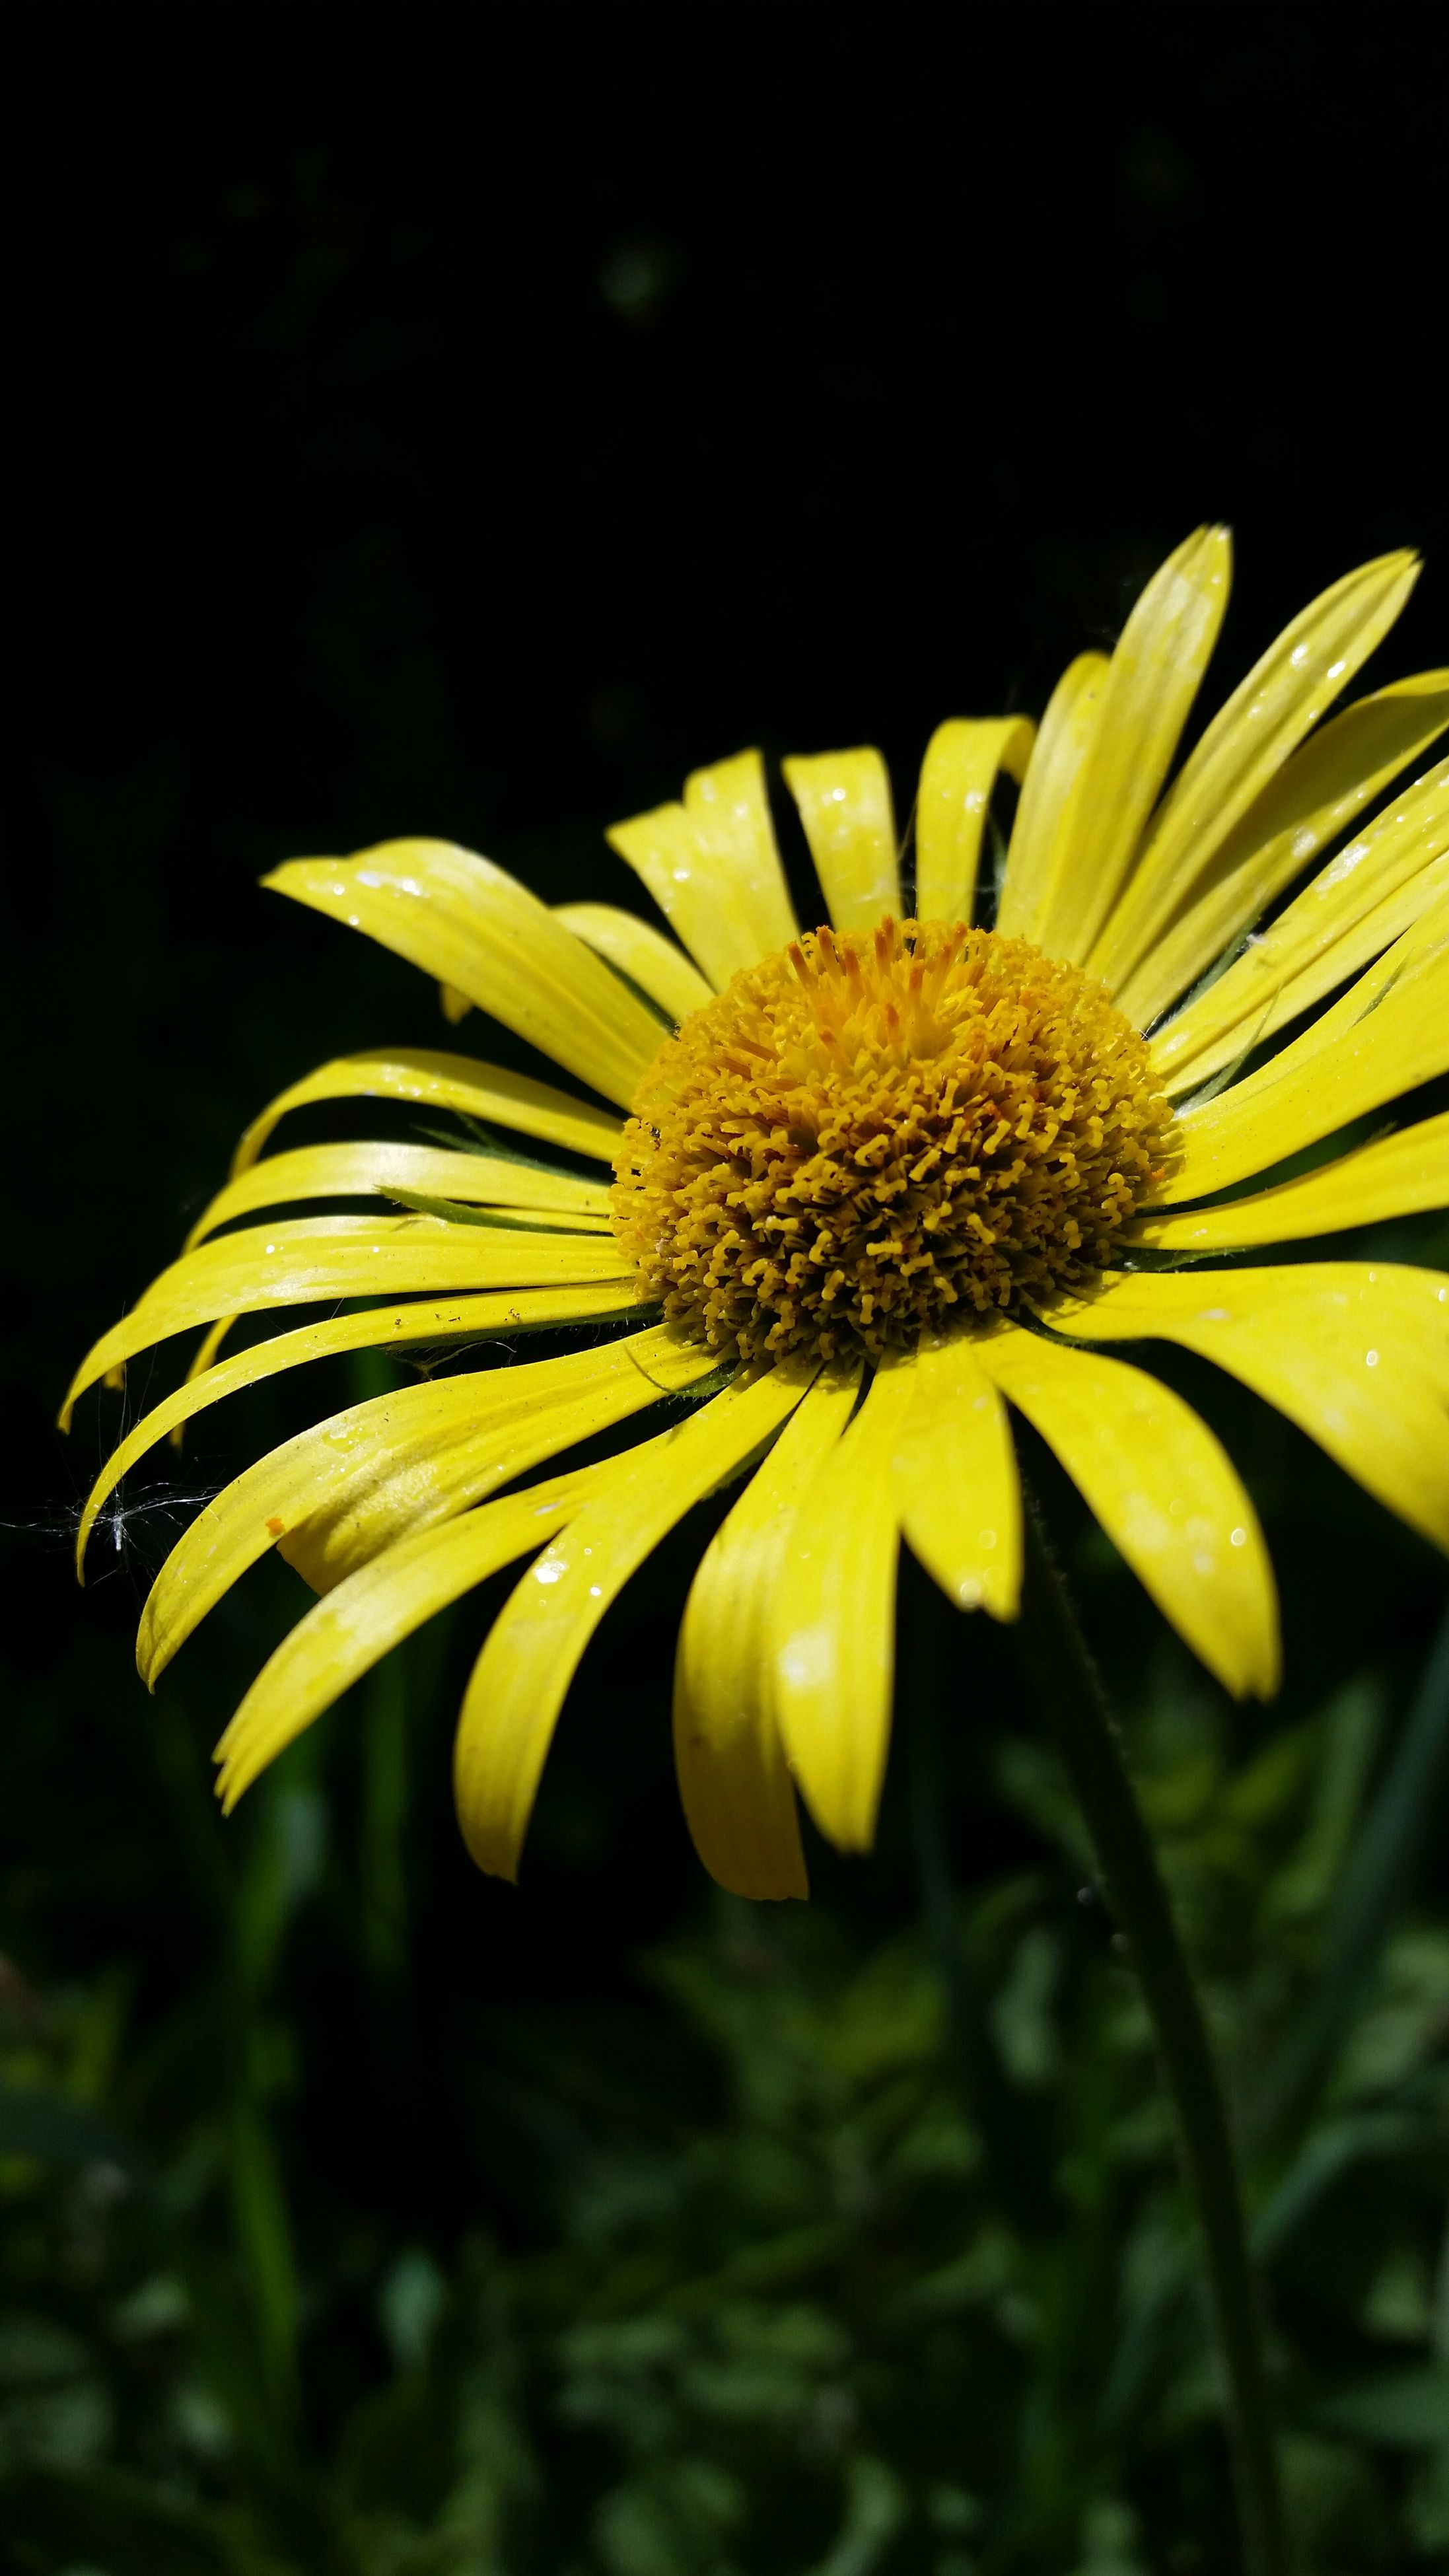 flower, freshness, yellow, petal, flower head, fragility, growth, beauty in nature, close-up, pollen, single flower, nature, blooming, focus on foreground, plant, in bloom, blossom, outdoors, no people, selective focus